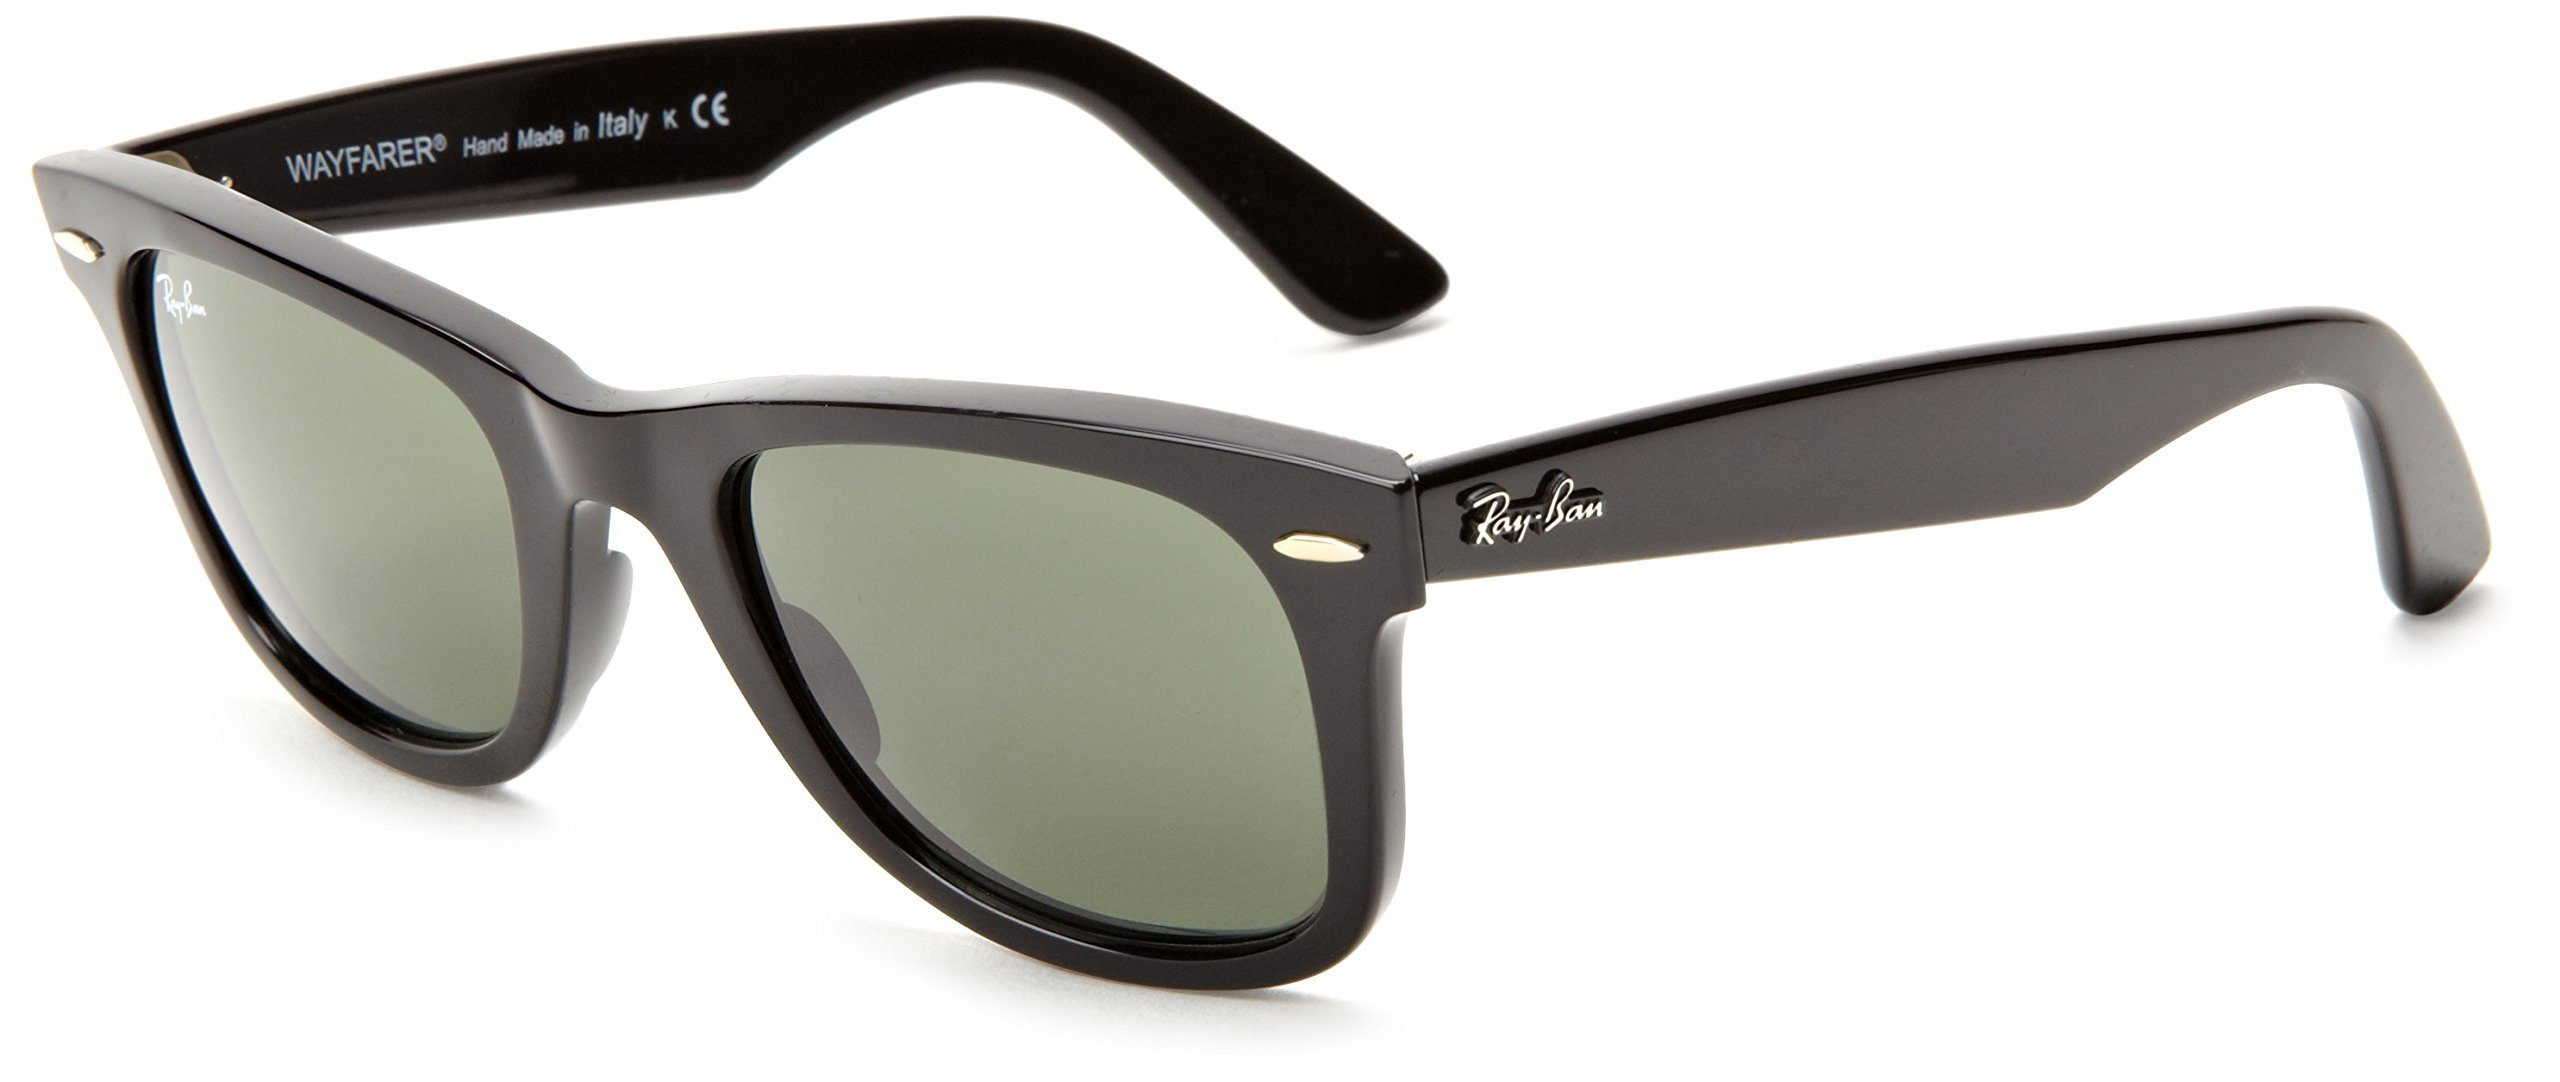 Ray-Ban 0RB2140 Original Wayfarer Sunglasses, Black, 54mm by Ray-Ban